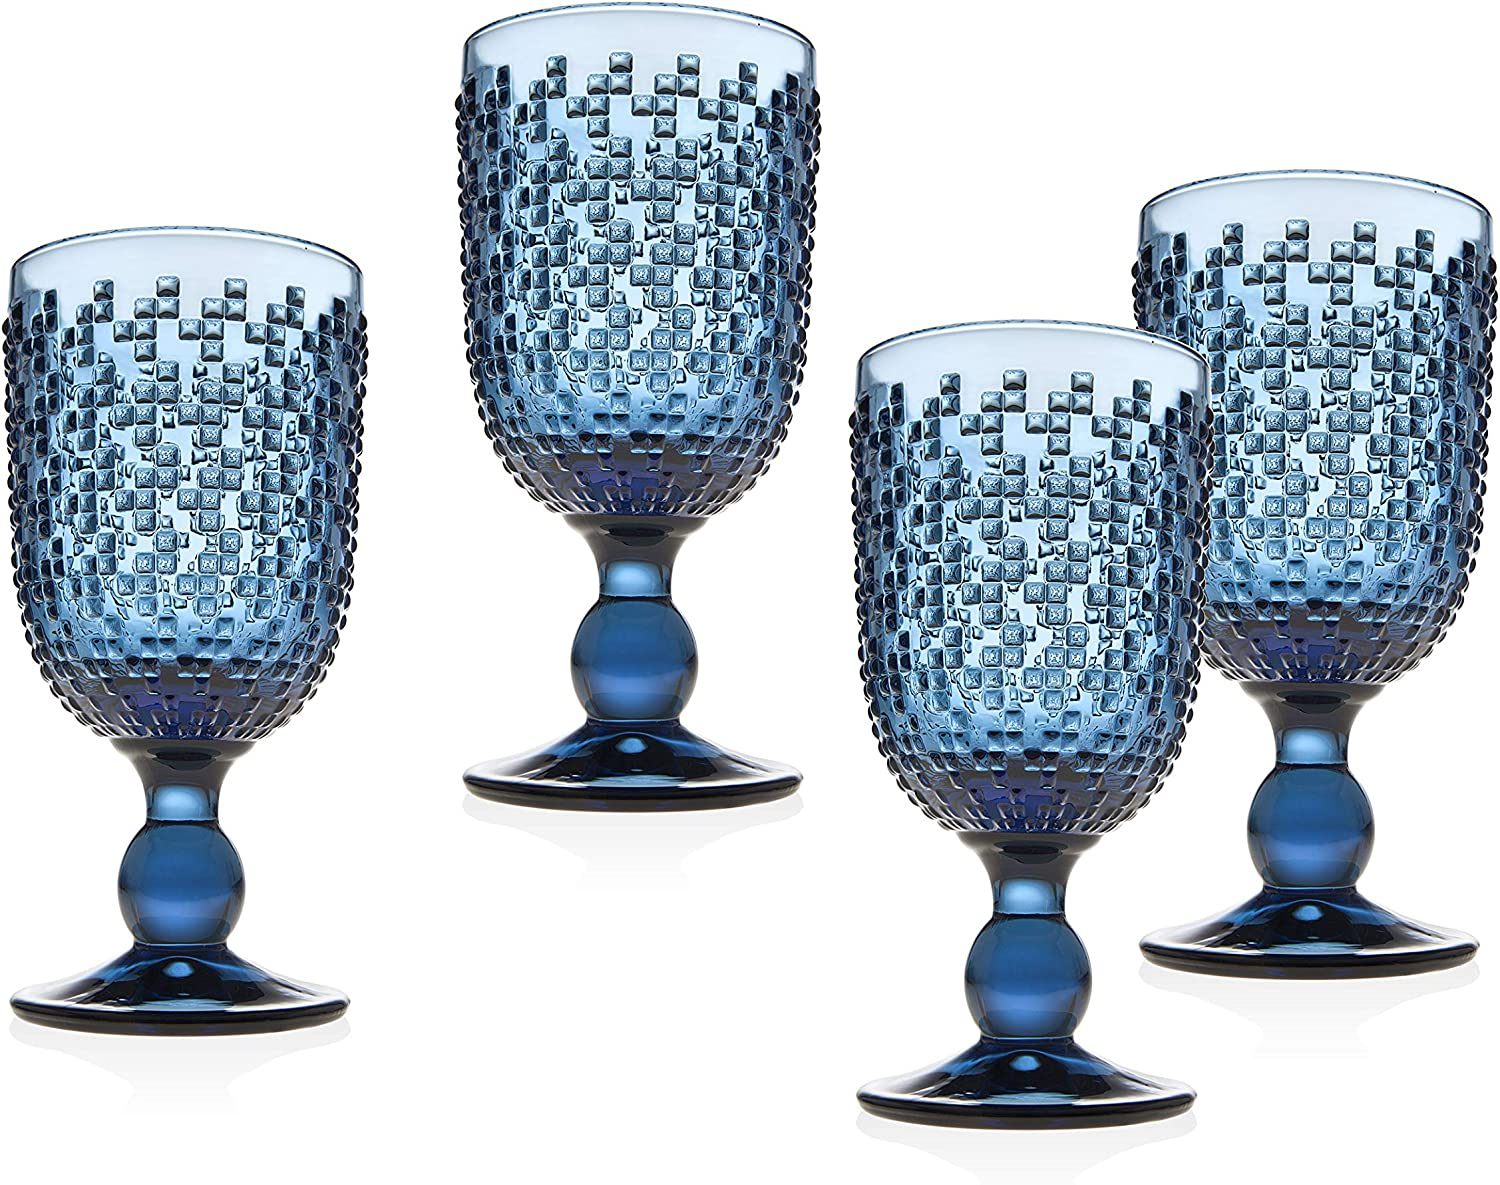 Wine Goblet Beverage Glass Cup Alba by Godinger - Blue - Set of 4